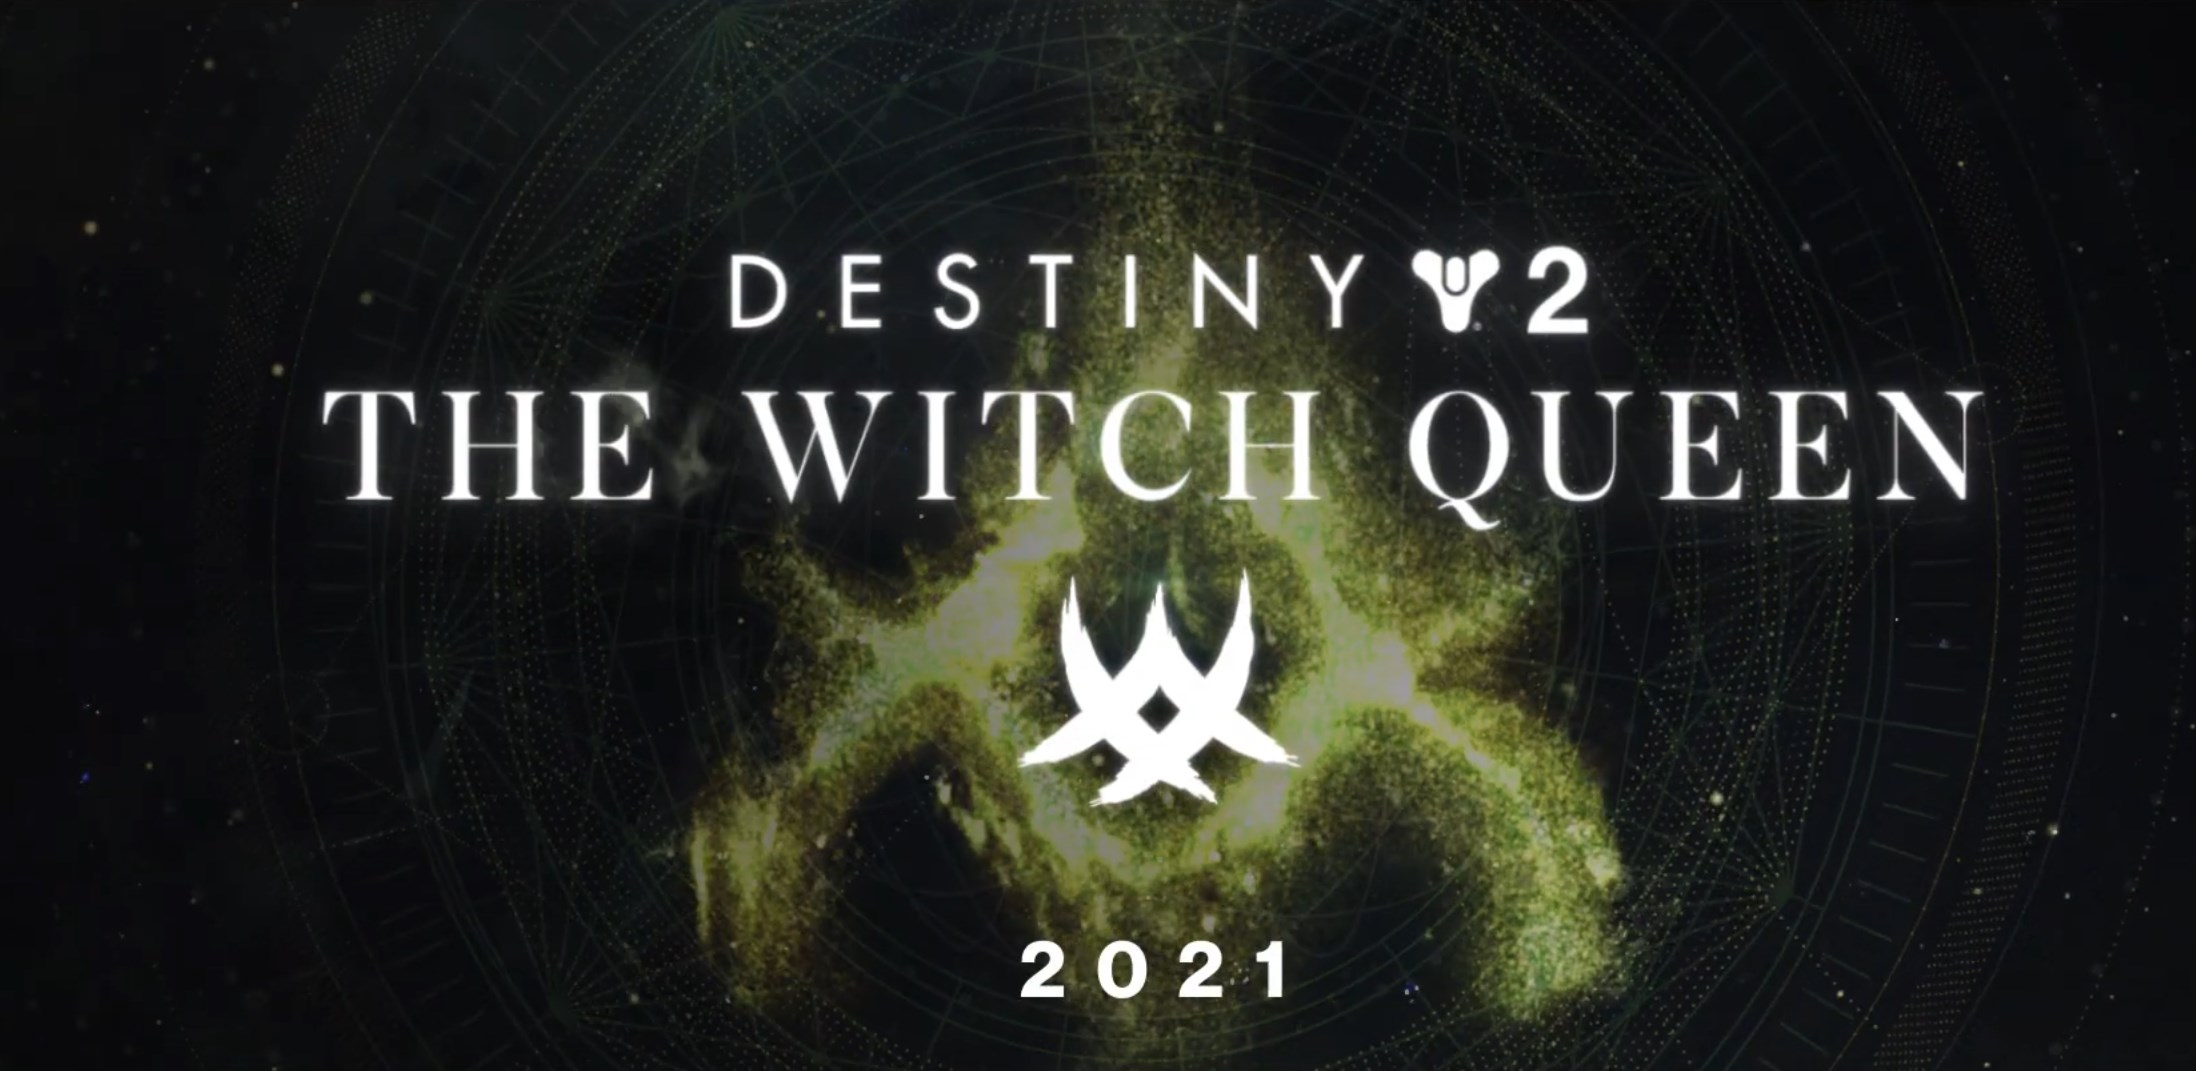 Destiny 2 Season 16 The Witch Queen